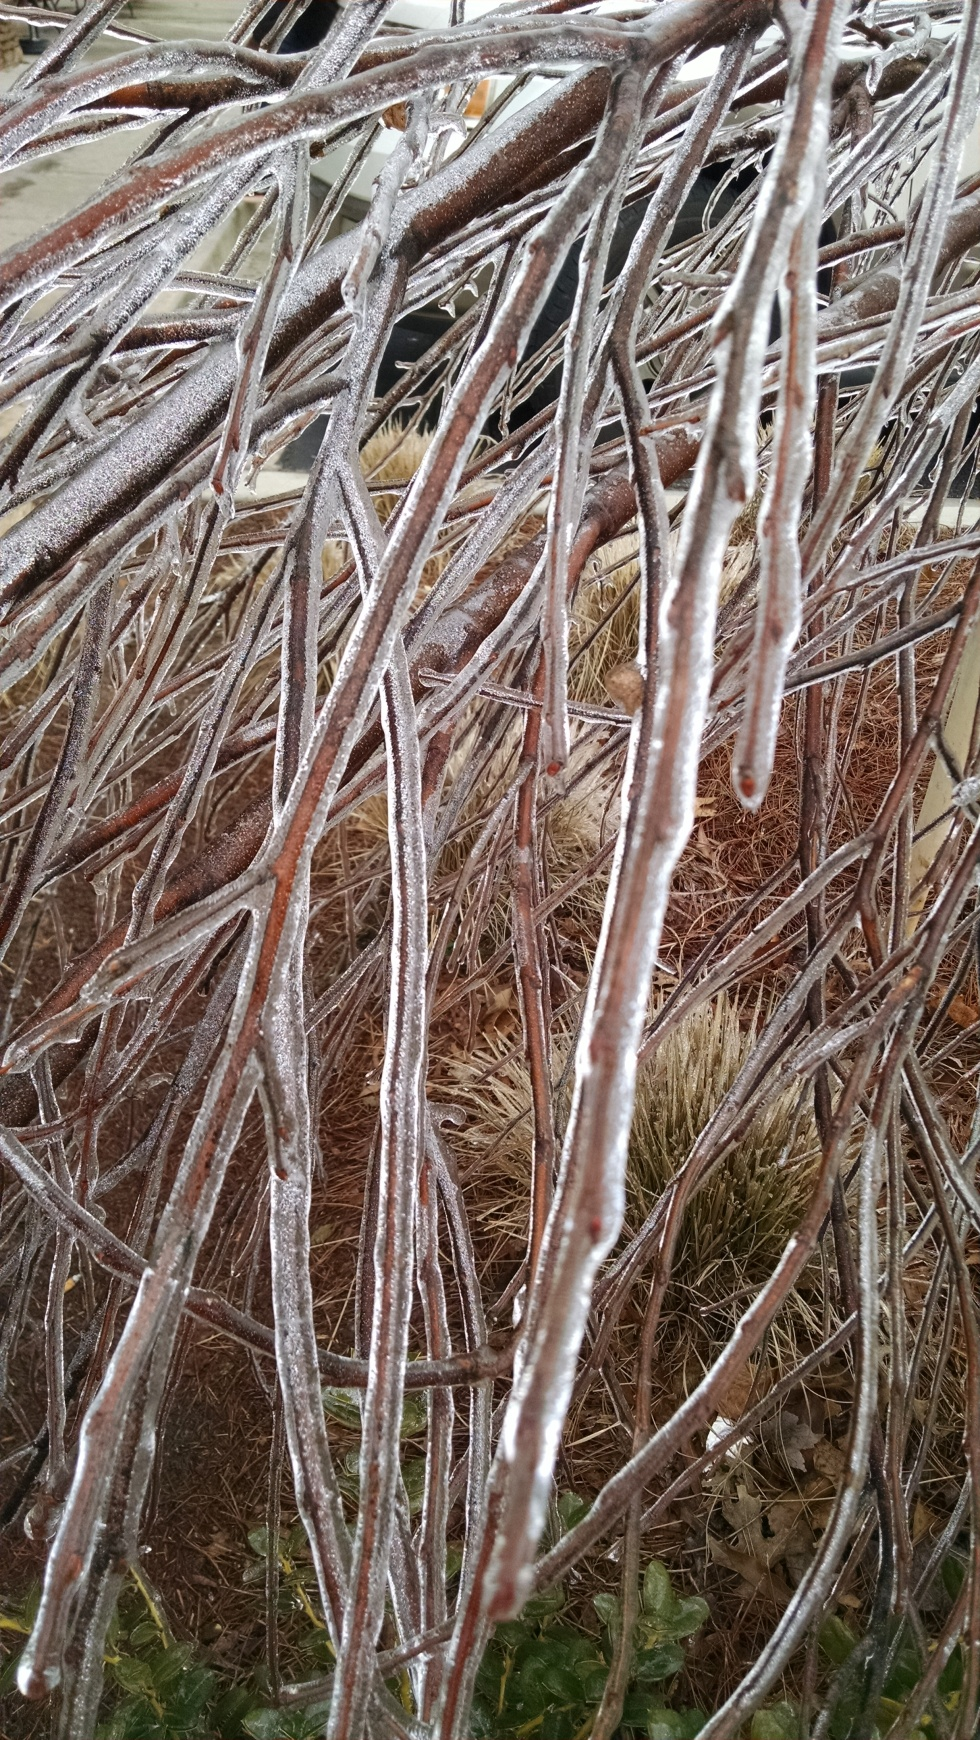 Ice shrouded branches, Cumming, GA 2/17/2015